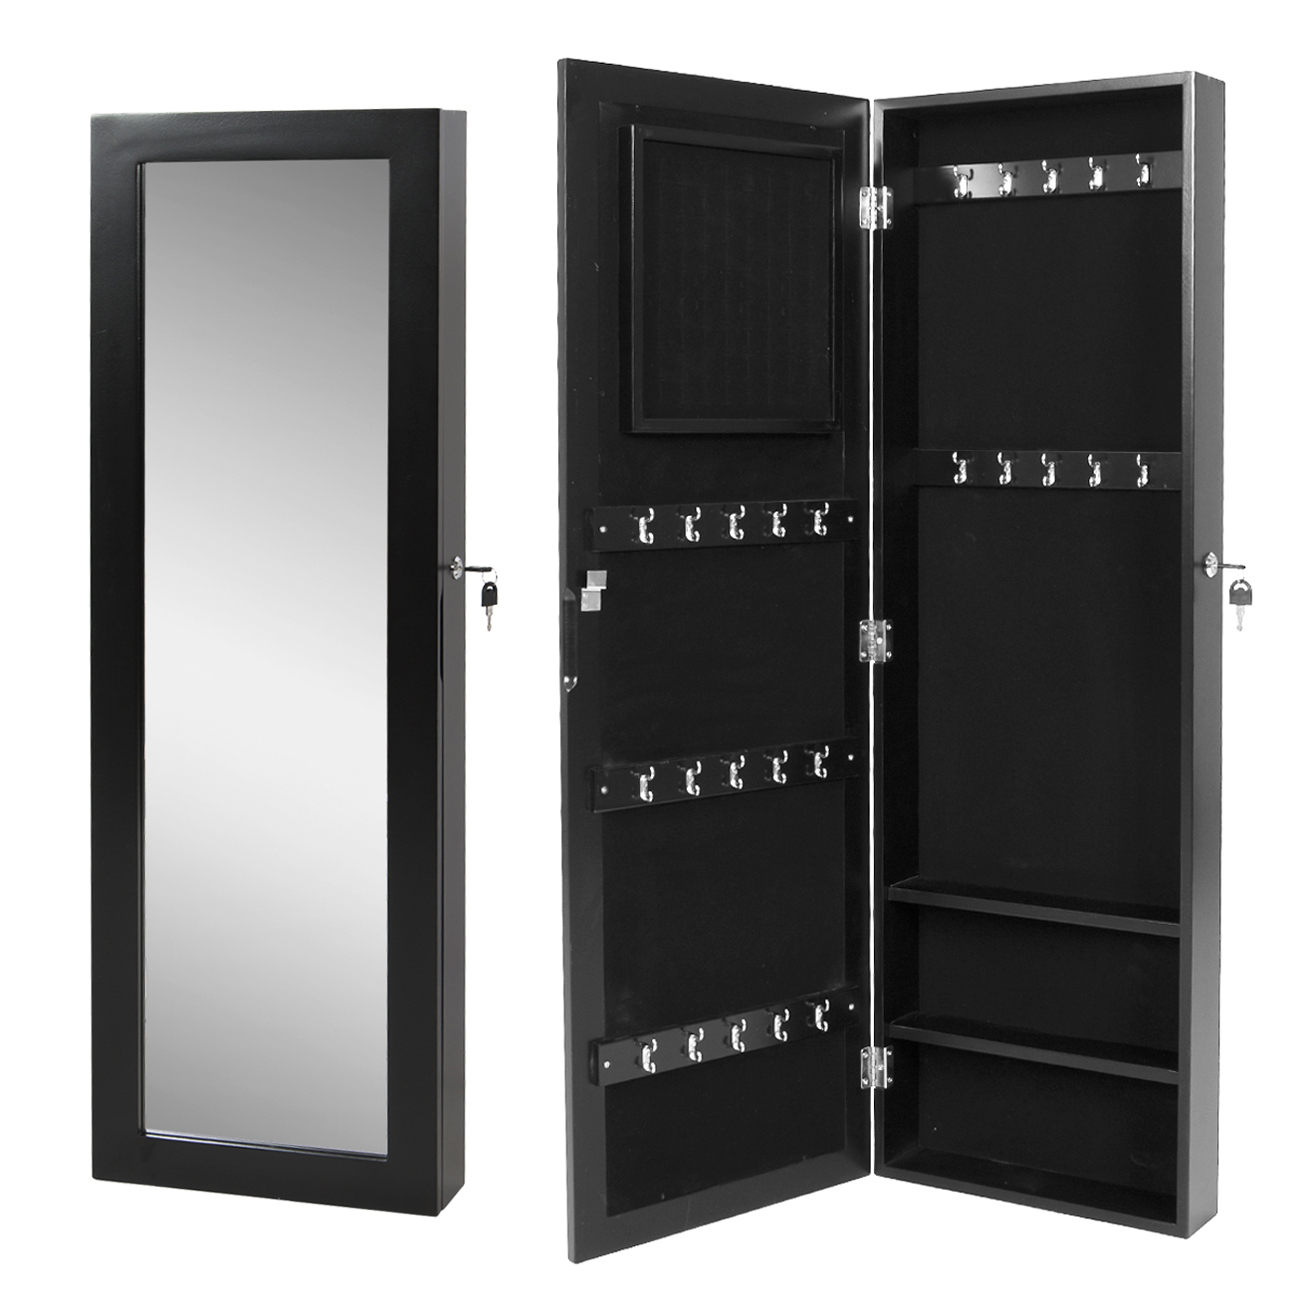 Mirrored Jewelry Cabinet Armoire Wall Mount Organizer